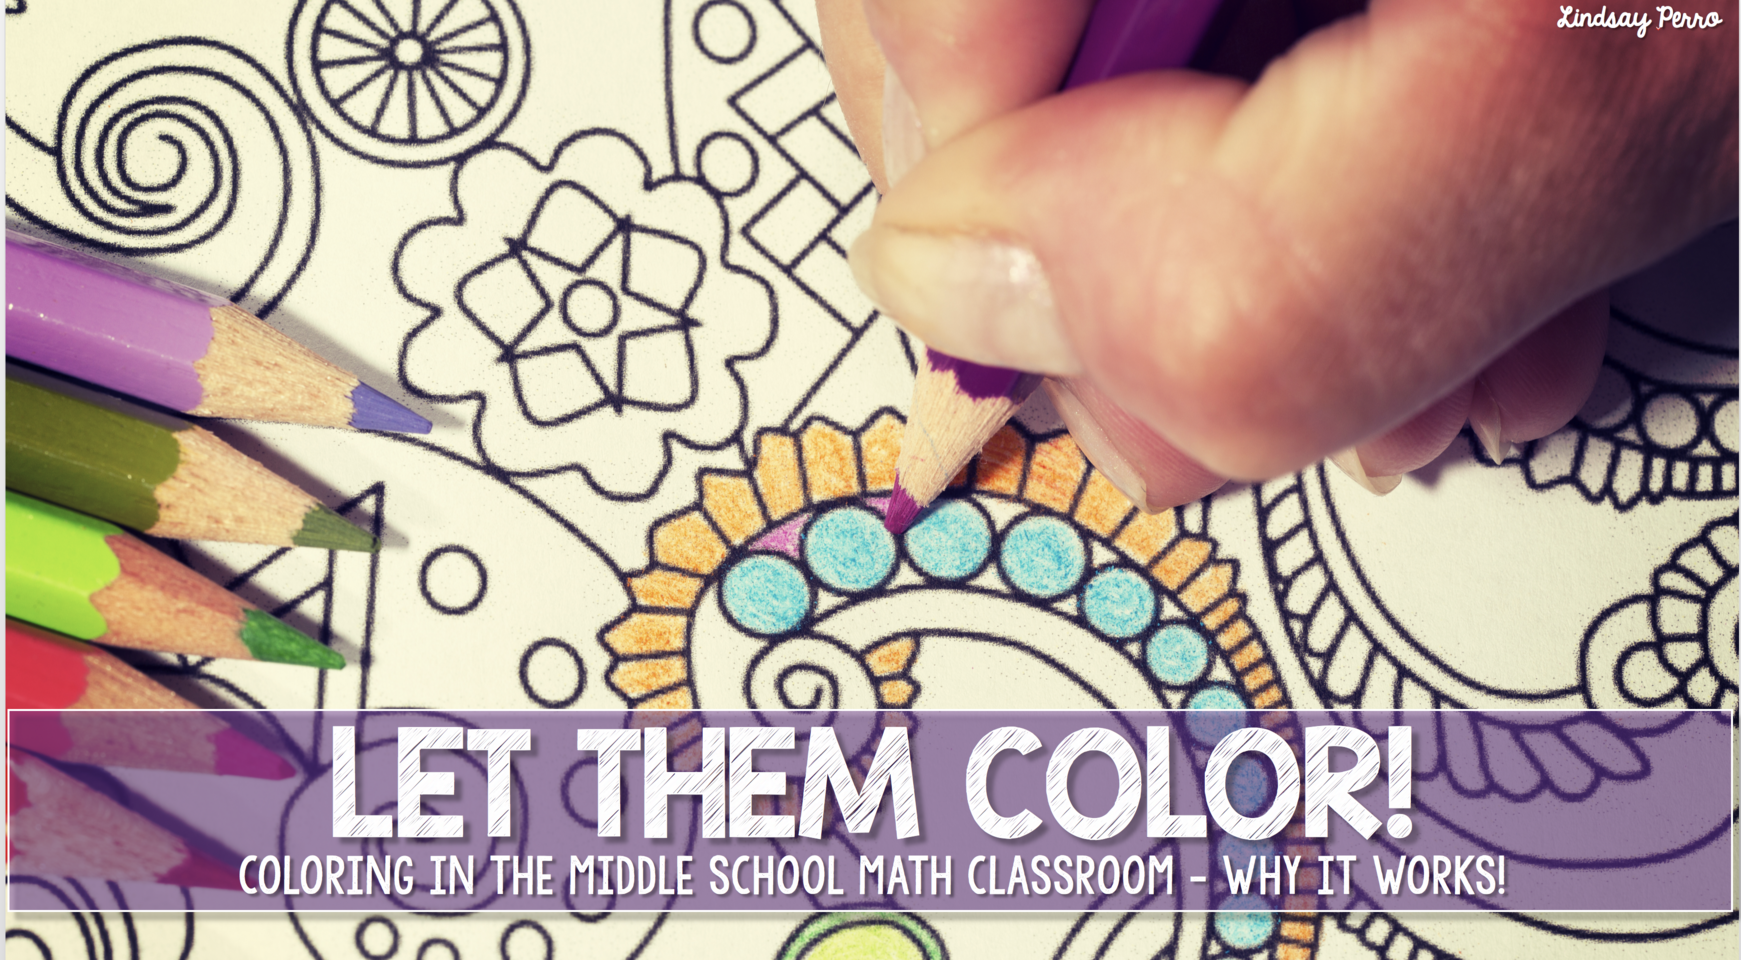 Let them color!